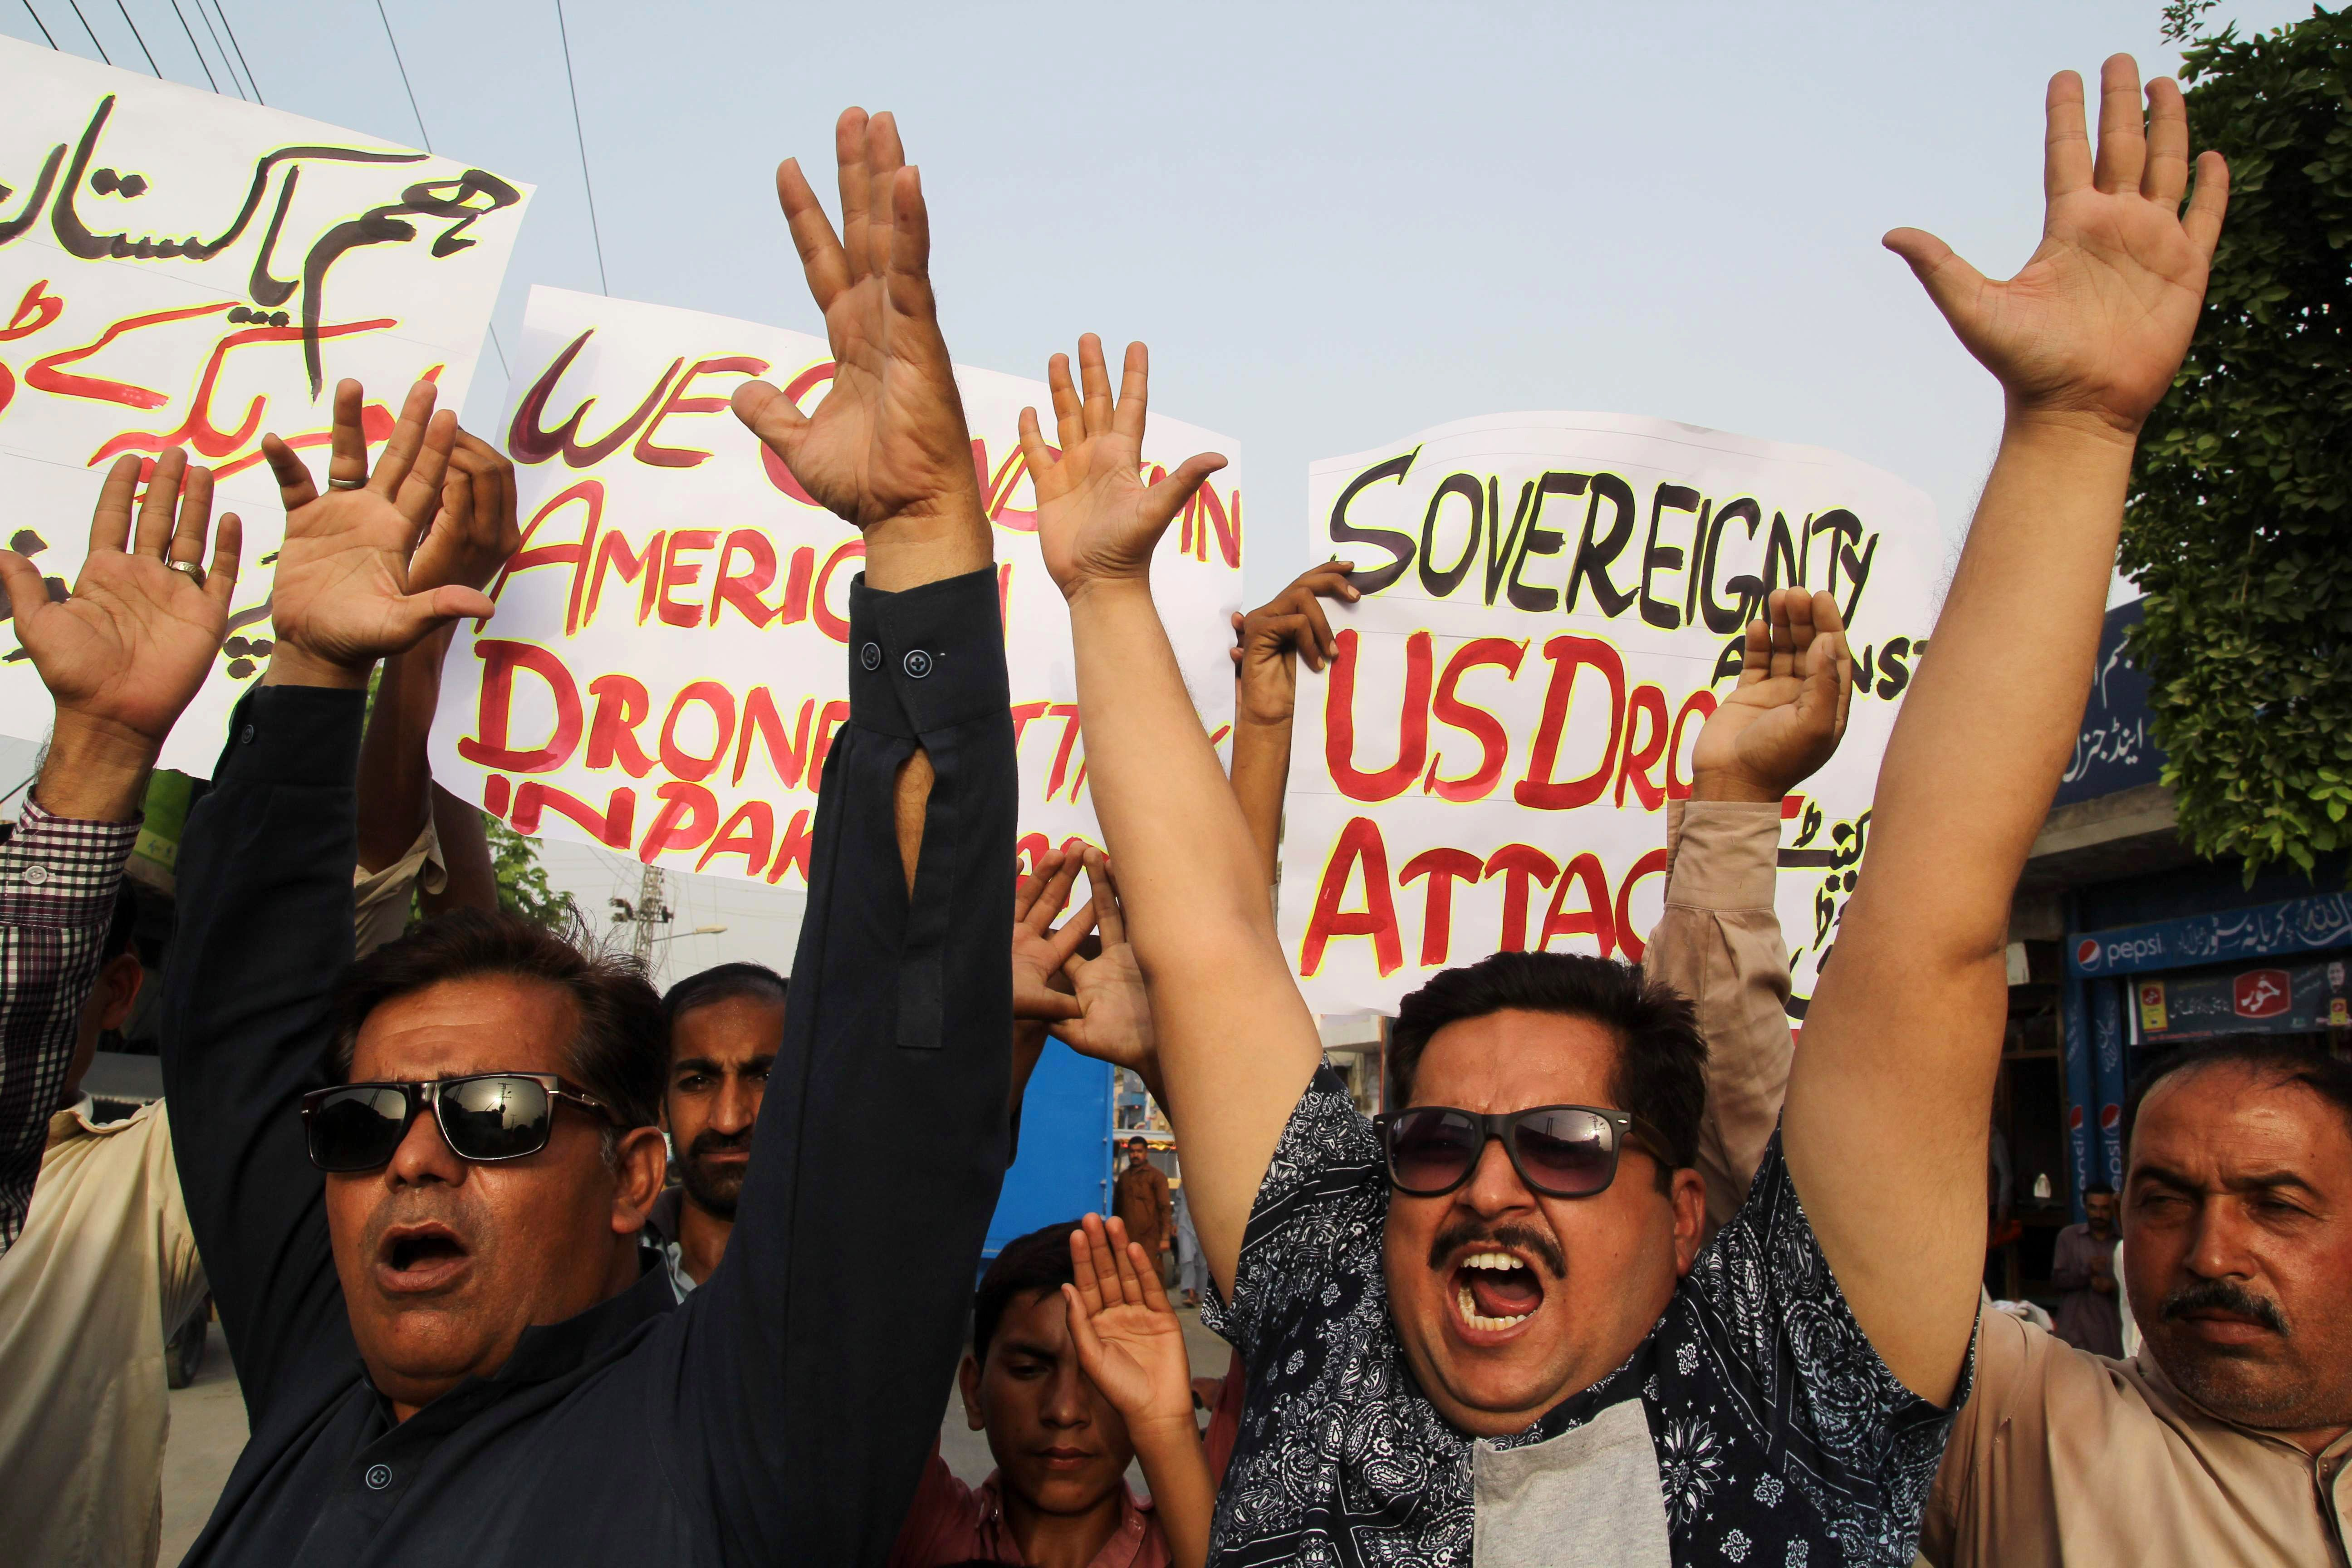 Pakistani civil society activists shout slogans during a demonstration in Multan on May 23, 2016, against a US drone strike in Pakistan's southwestern province of Balochistan.